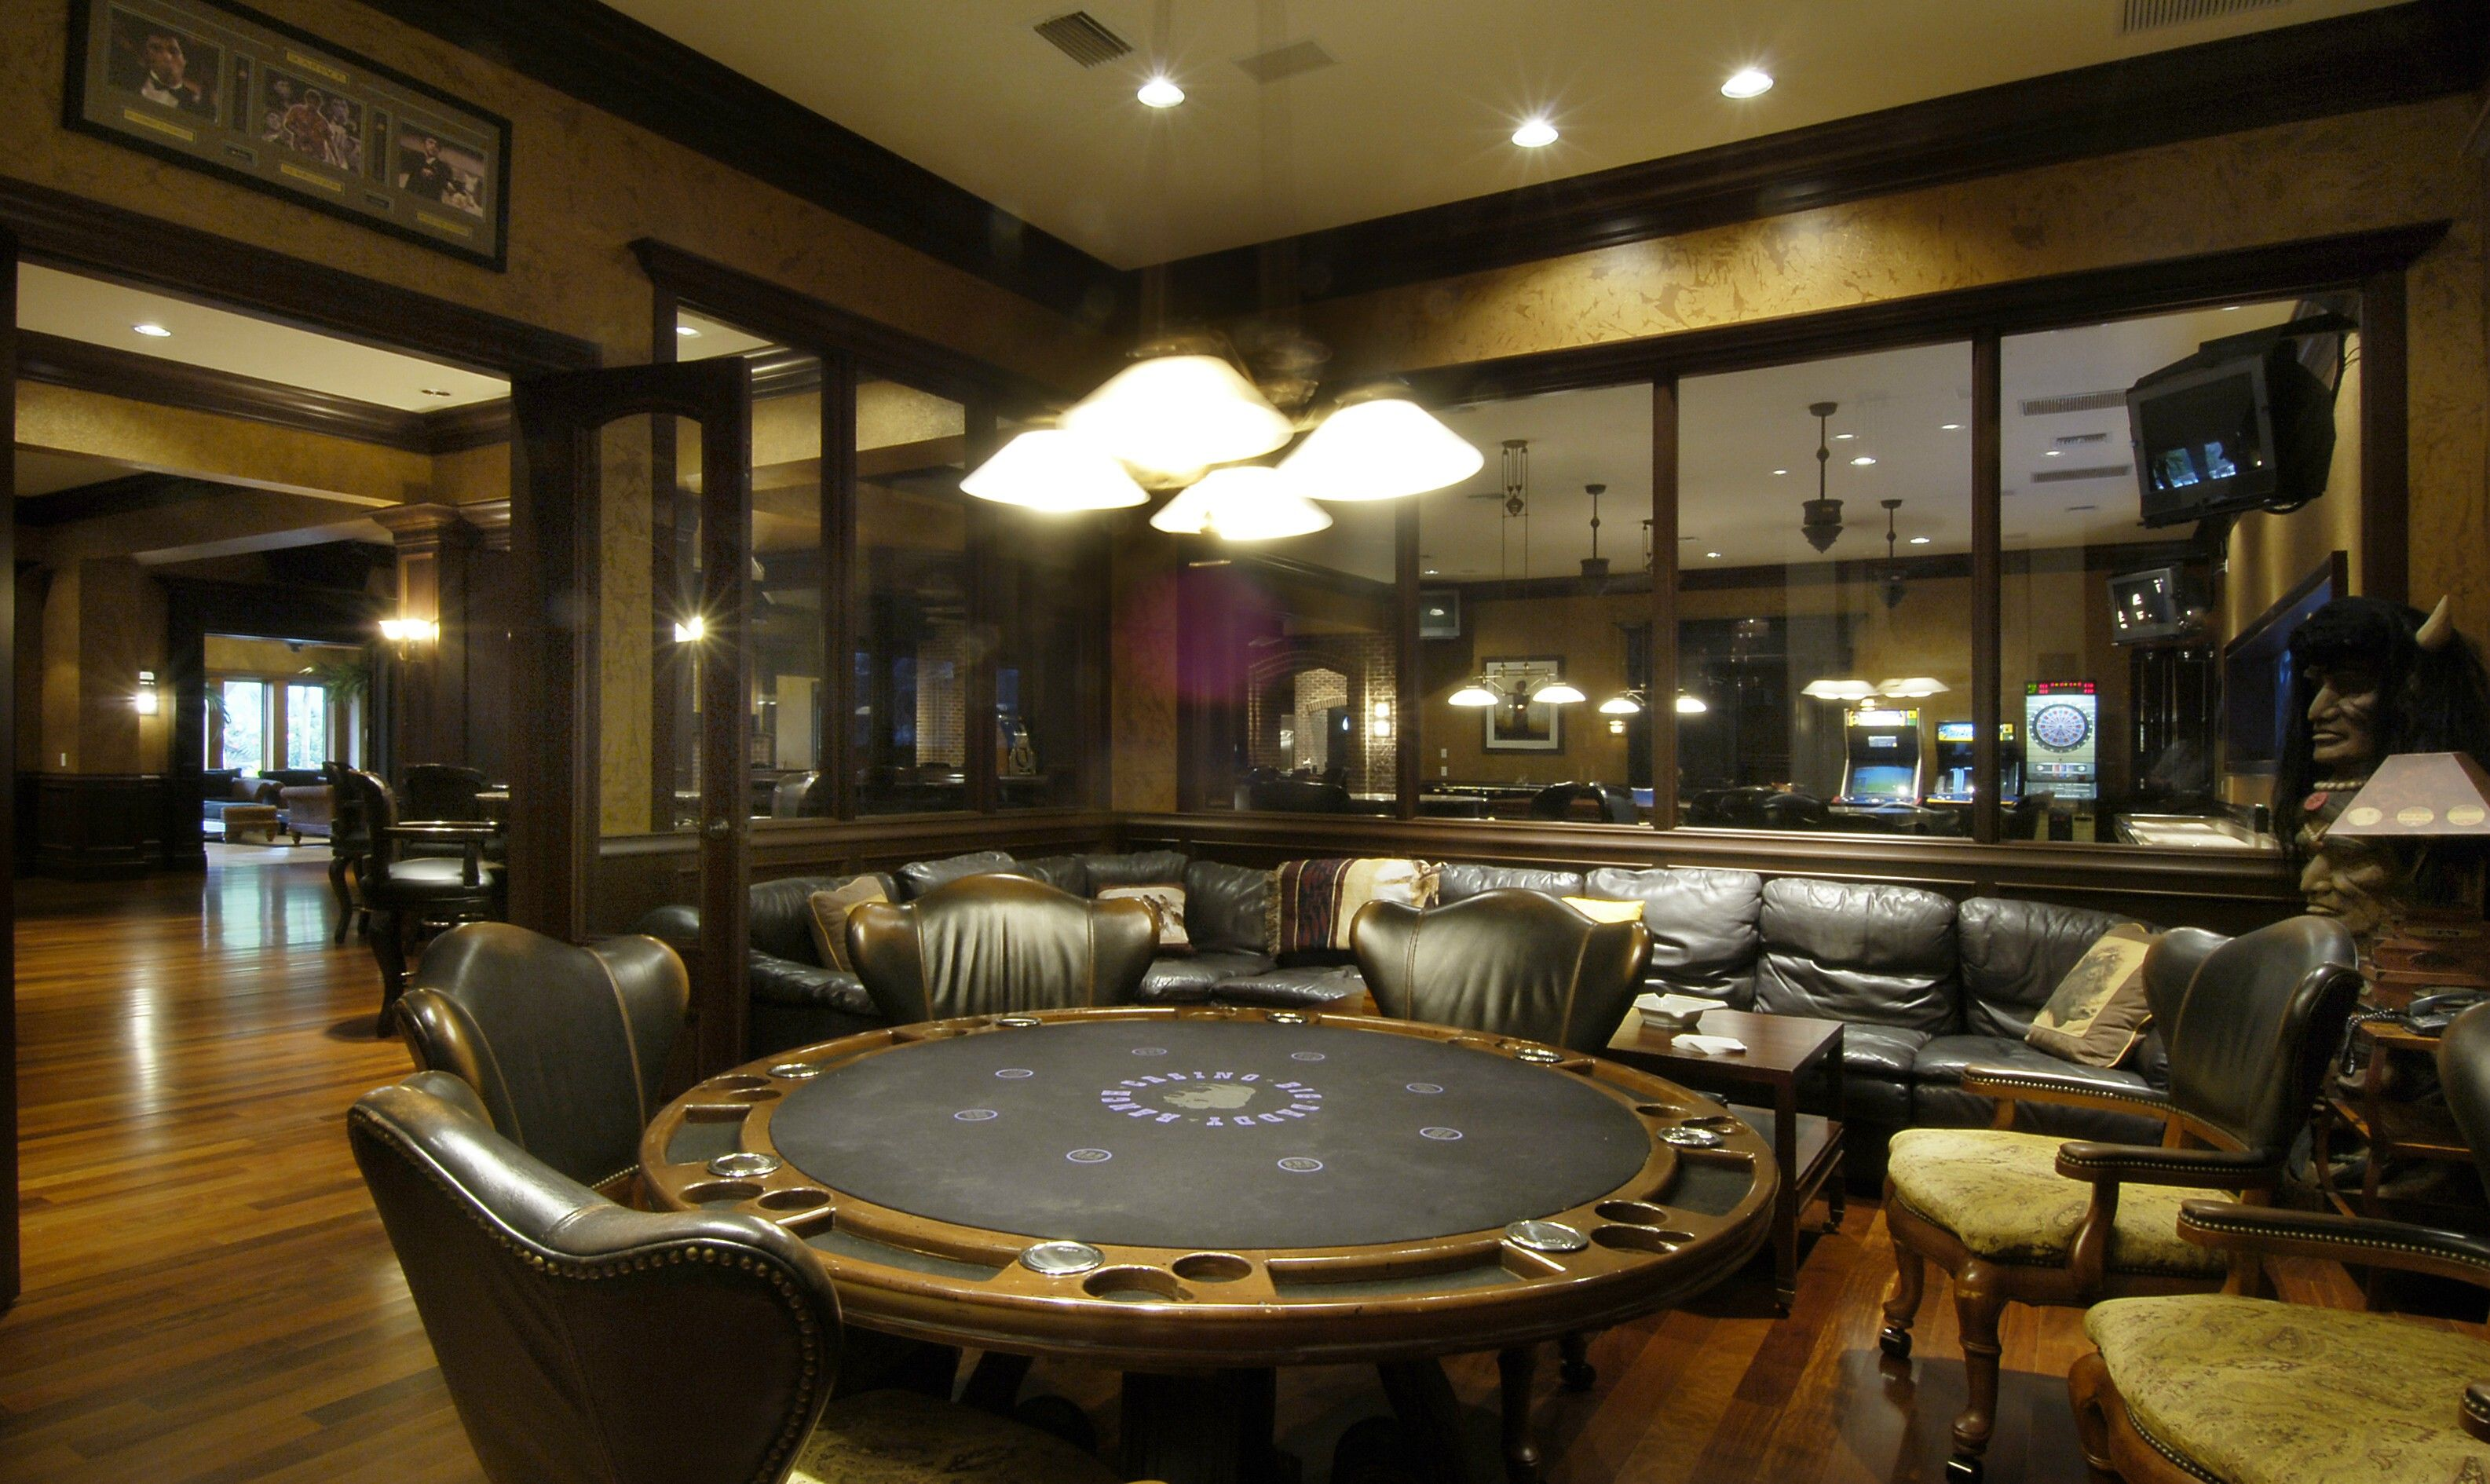 A perfect guys retreat! A luxury poker room within a rec